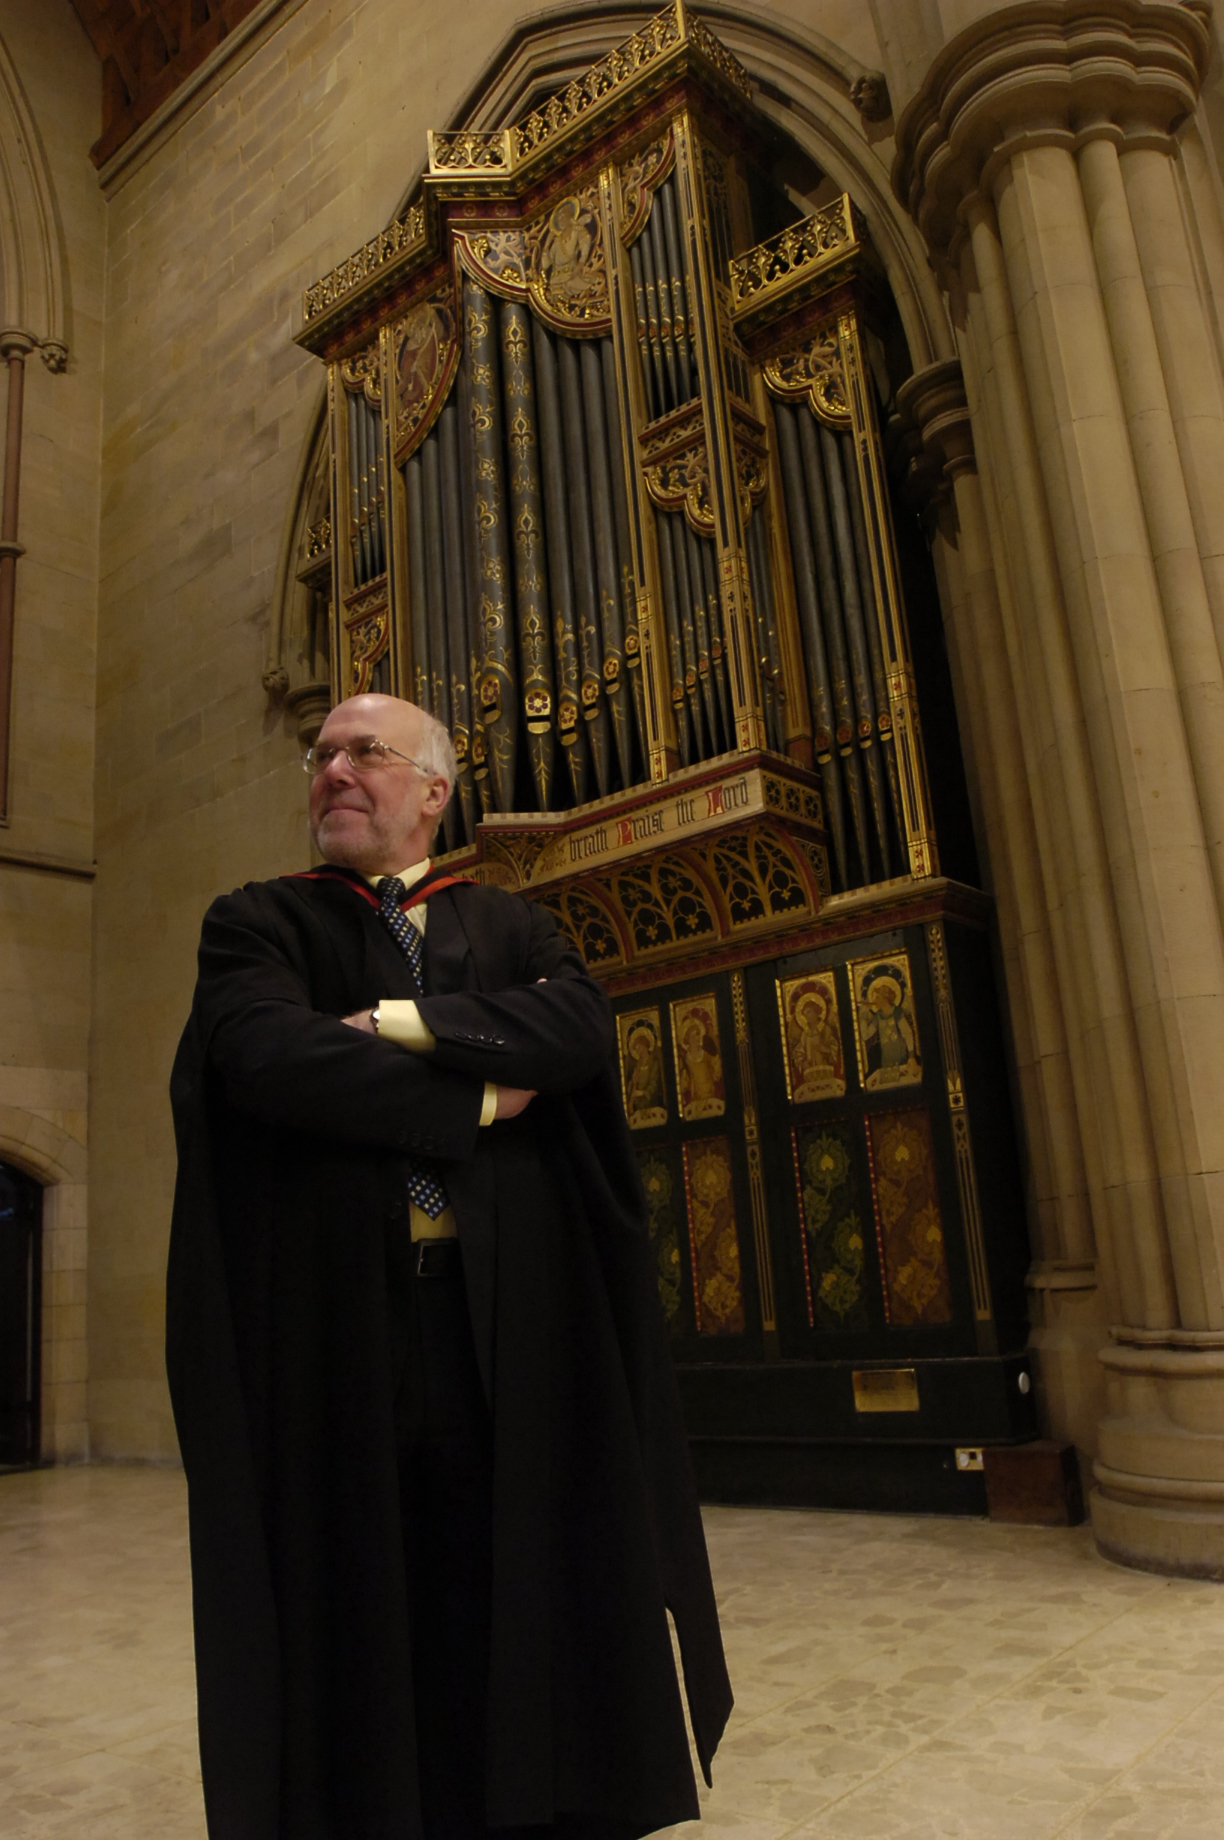 Stephen Carleston, organist at Bolton Parish Church